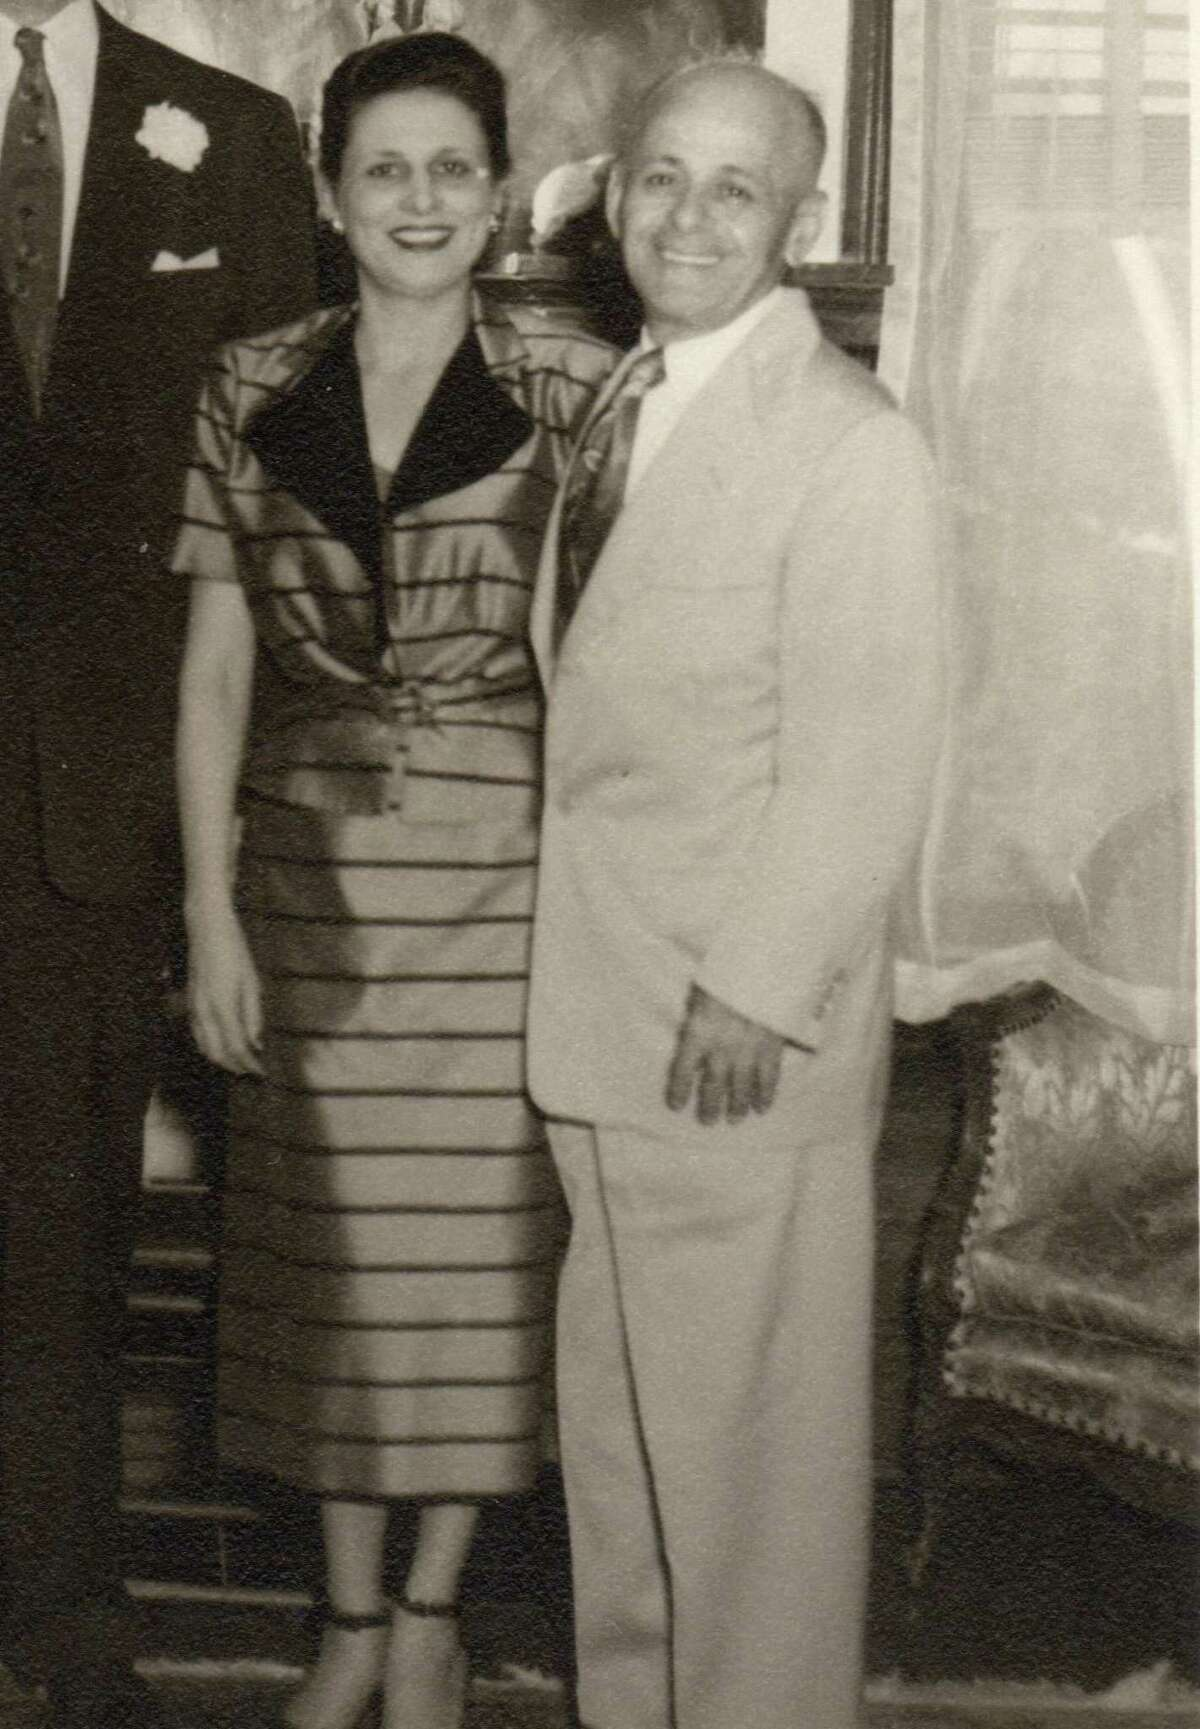 Toffe 'Charlie' Satel and his wife Selma, who operated a tailoring business near Fort Sam Houston; they moved to Alamo Heights in 1931.